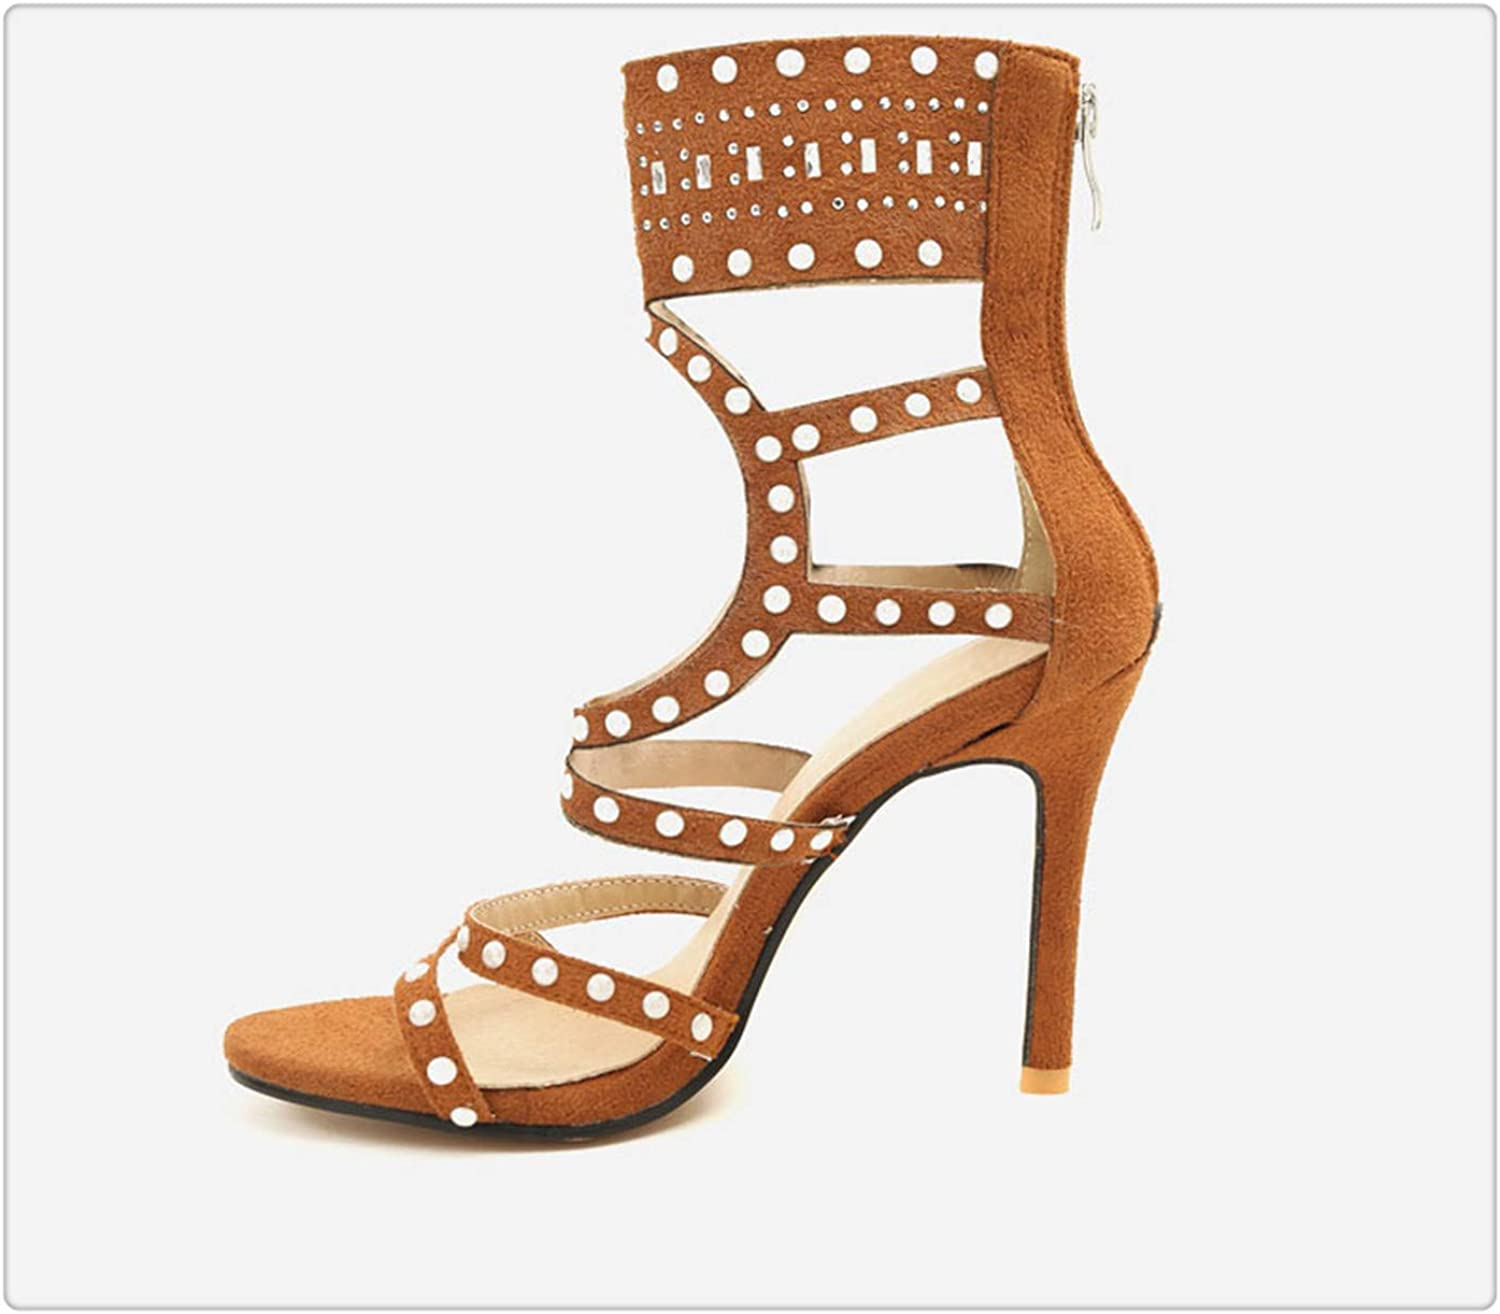 Yyixianma Summer Women Gladiator Sandals Ladies Sexy Street Beat Sandals Woman Large Size Thin High Heel Party shoes Brown 7.5